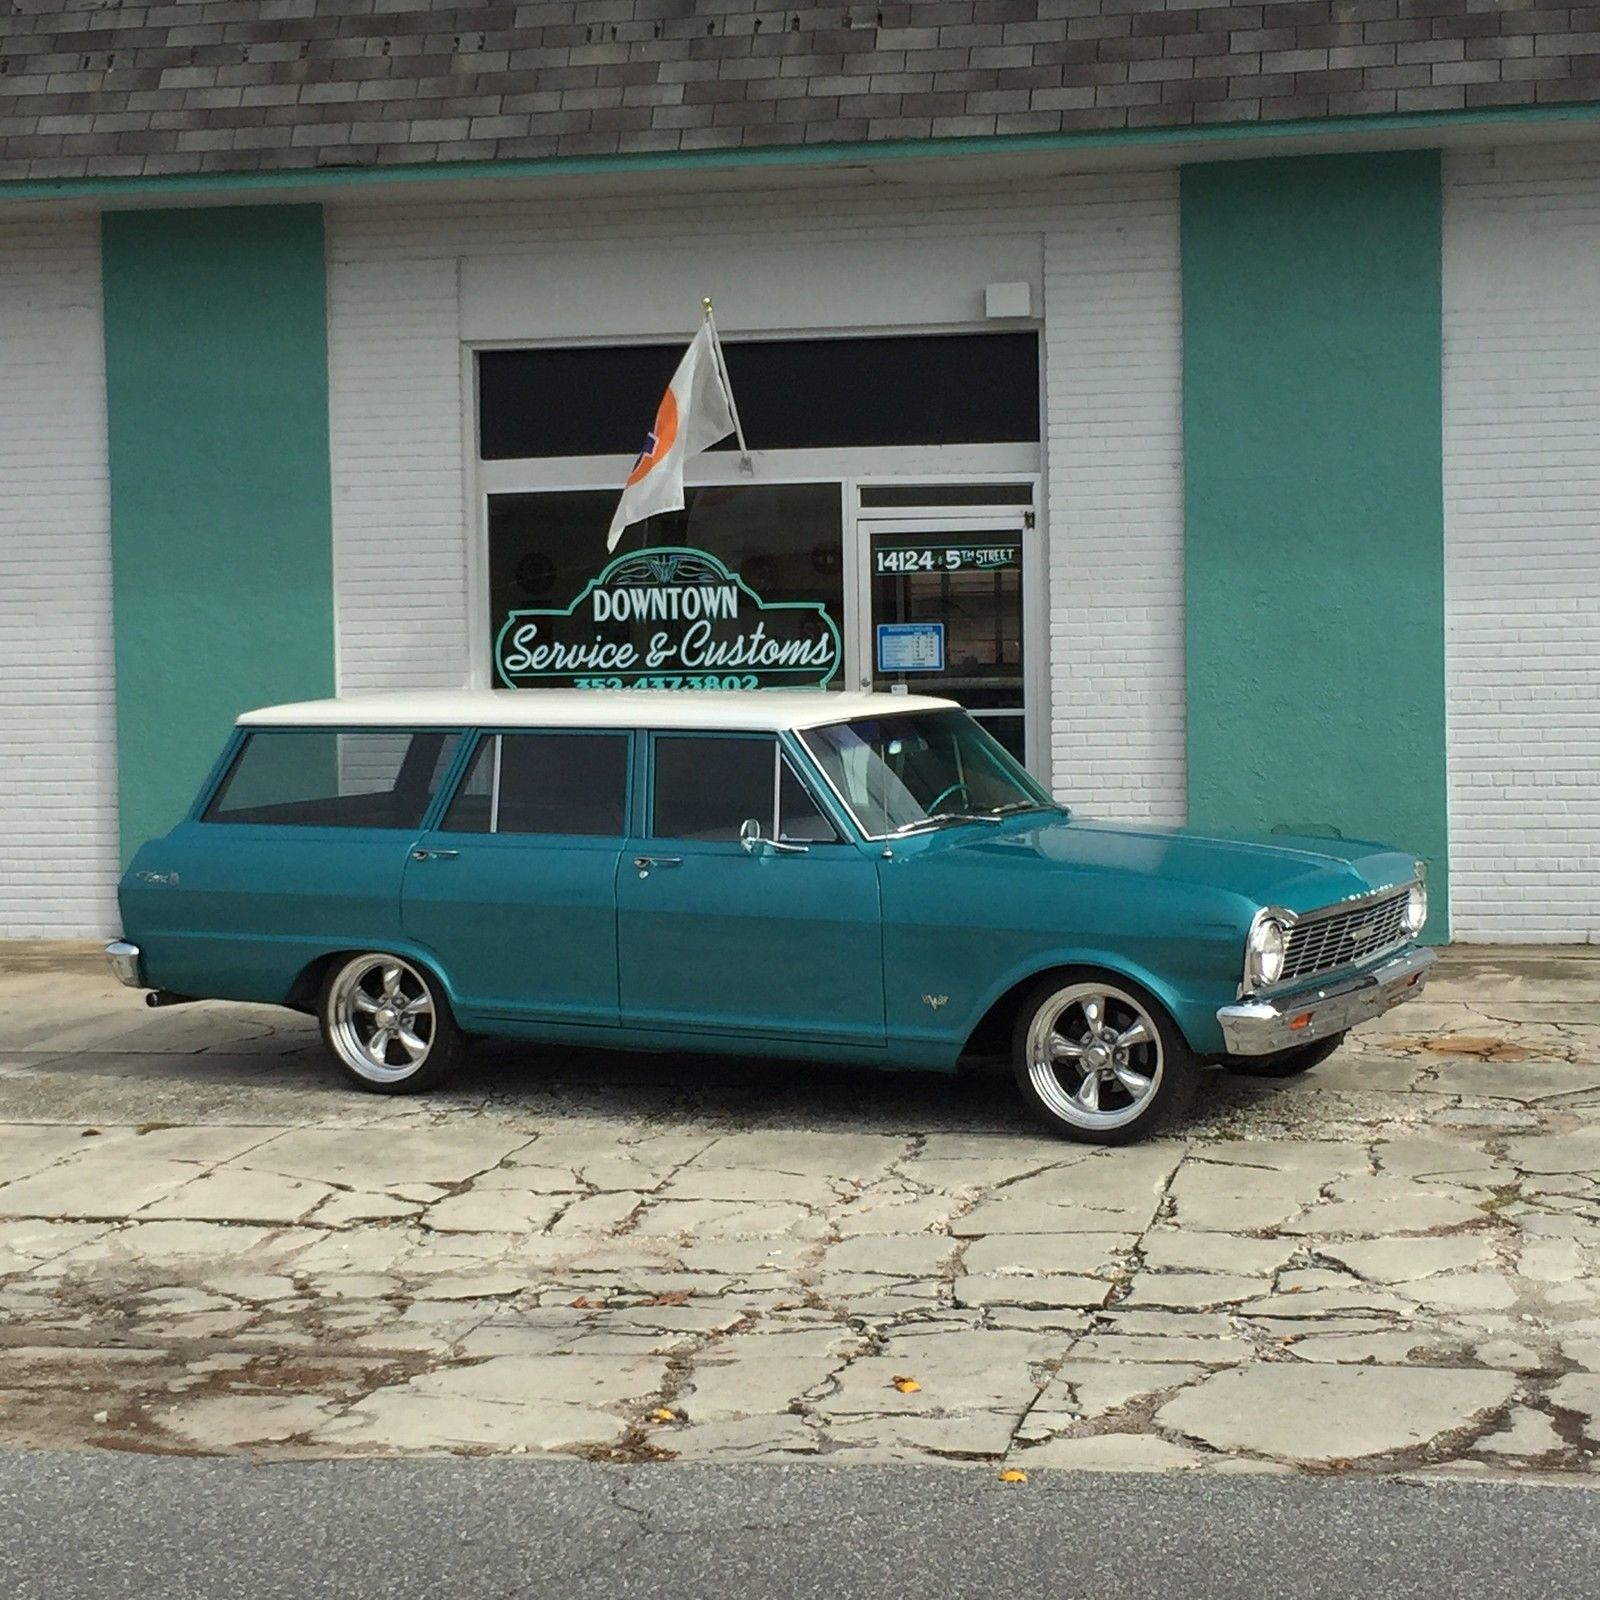 1965 Chevrolet Nova Station Wagon Air Ride Chevy Ii Hot Rod 2 Tone Bagged Custom For Sale In Dade City Florida United States